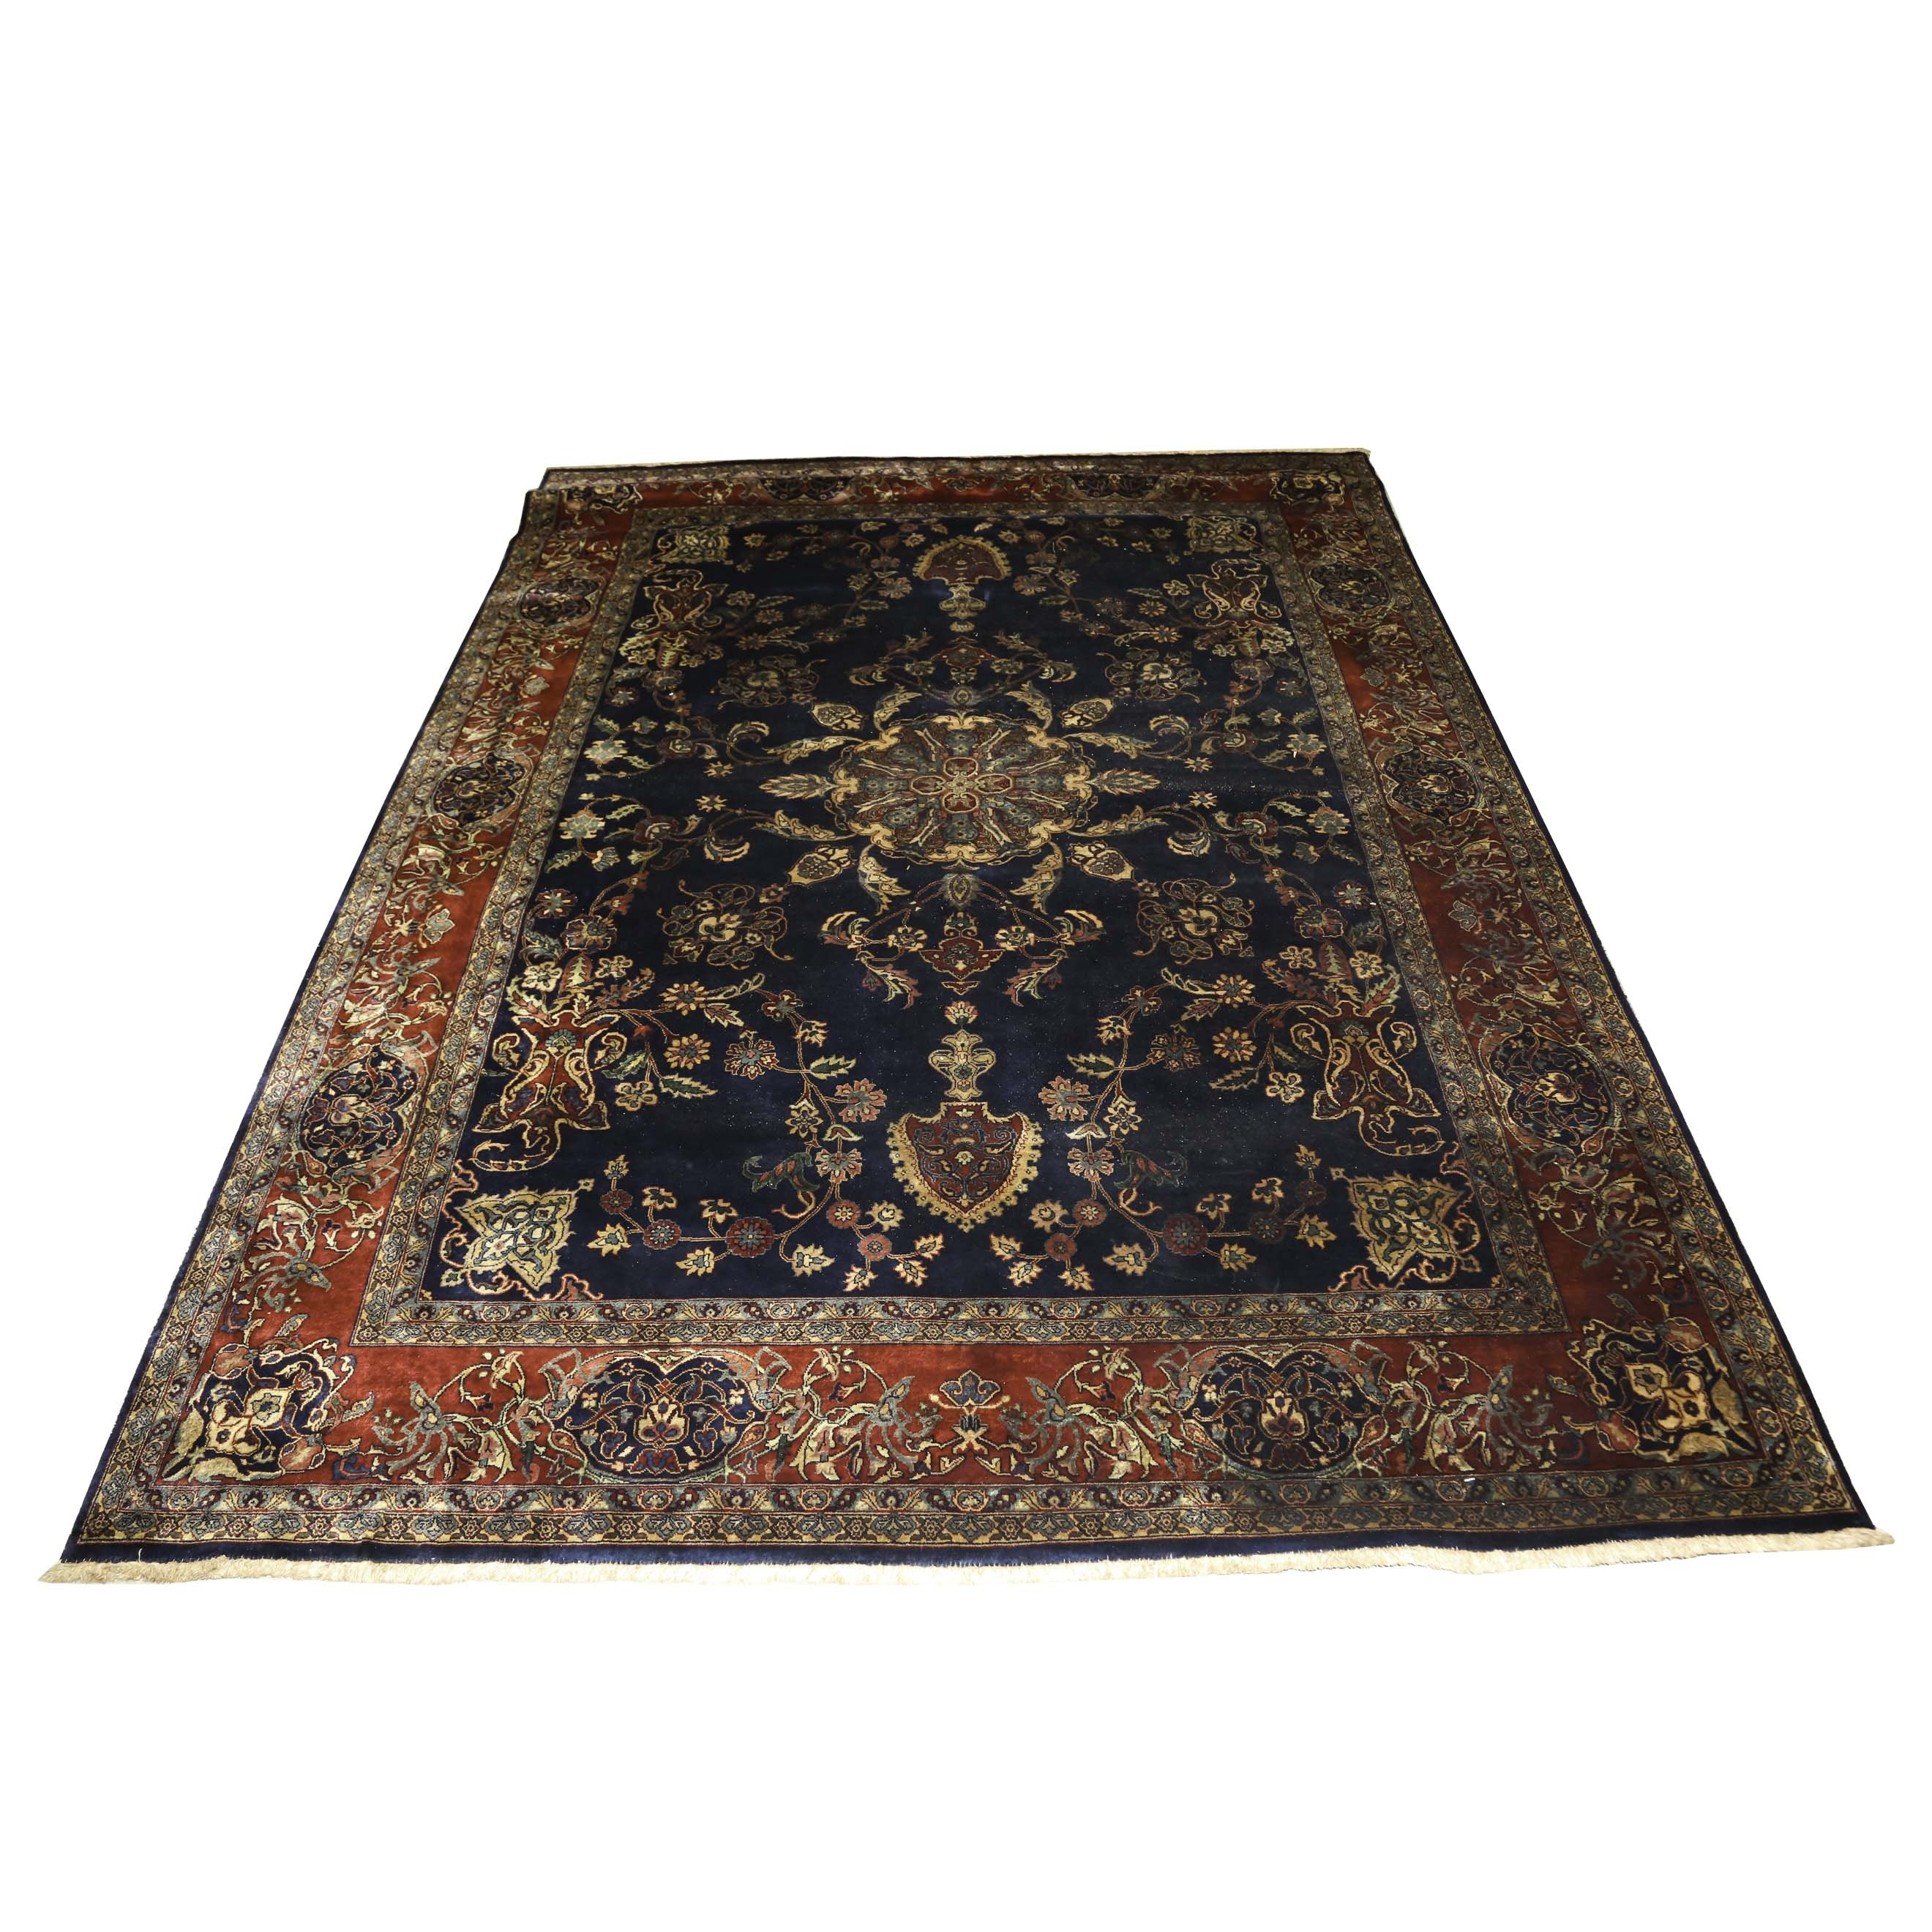 Hand-Woven Persian Wool Area Rug